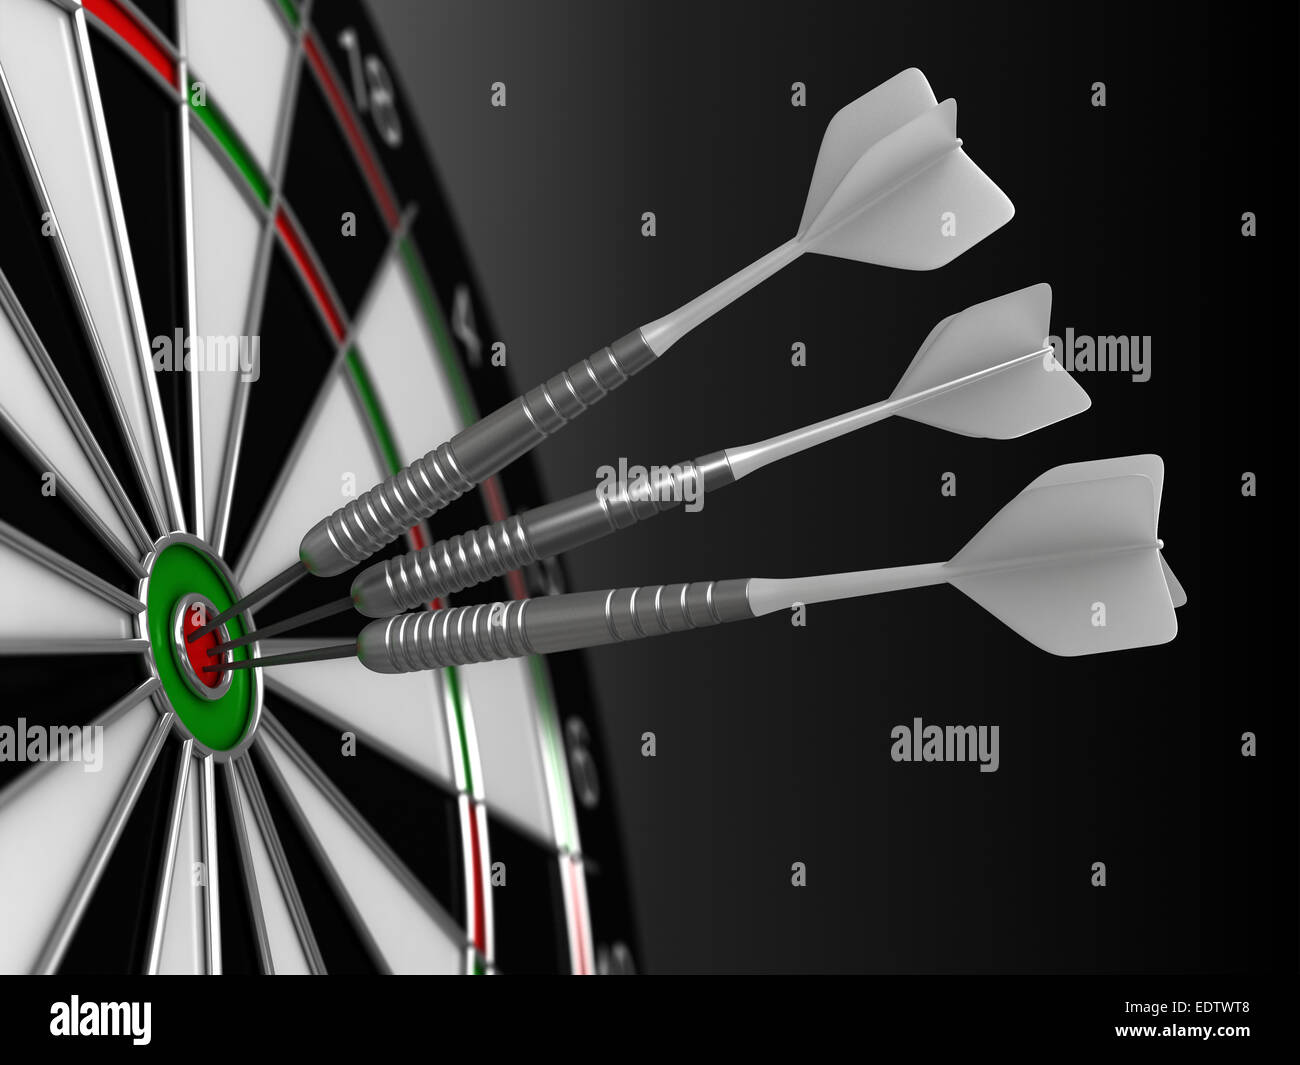 Close up 3d render of darts and board - Stock Image